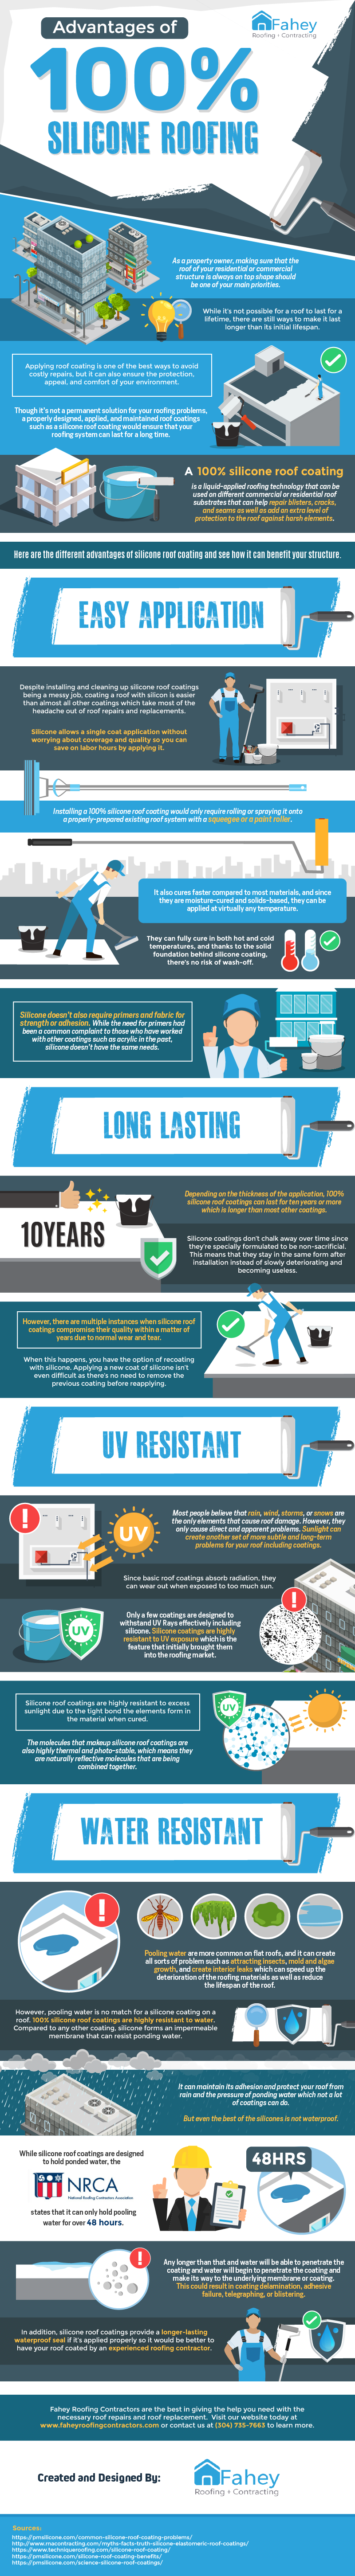 Advantages Of 100% Silicone Roofing - Infographic